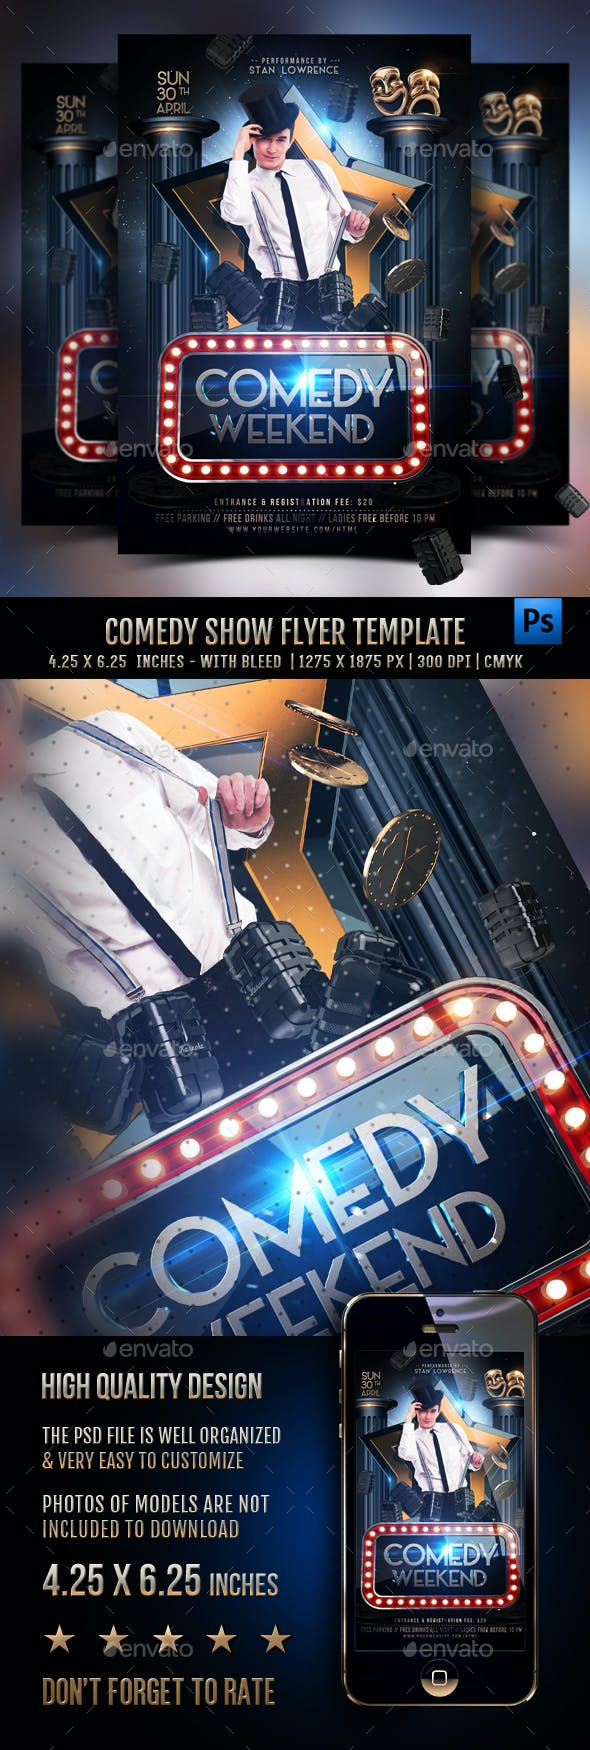 Comedy Show Flyer Template By Rembassio Graphicriver